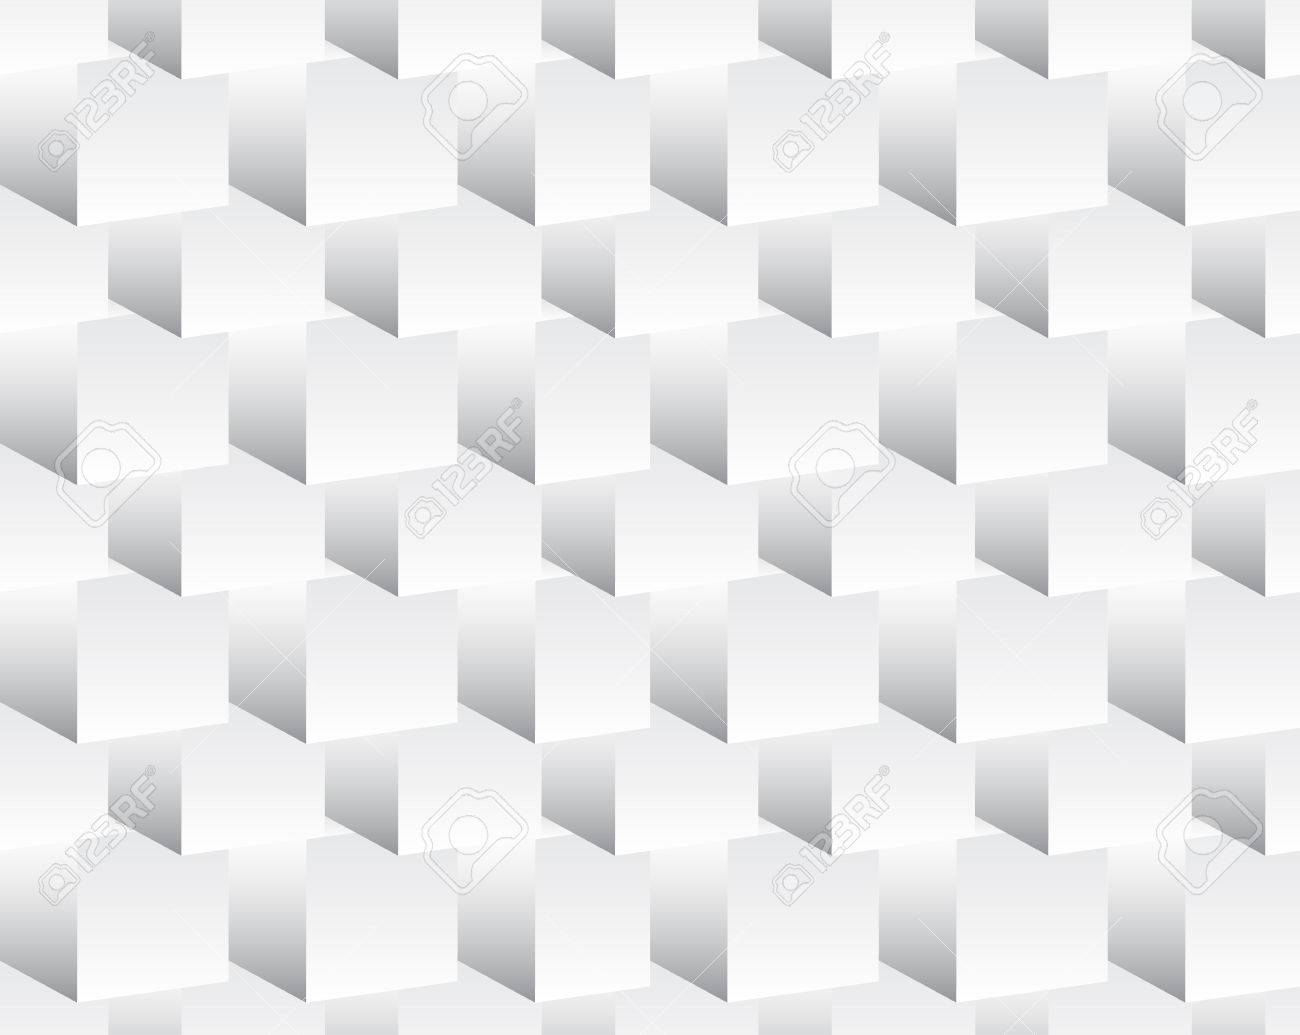 Background image grayscale - Repeatable Background With 3d Cube Shapes Grayscale Abstract Minimal Pattern Stock